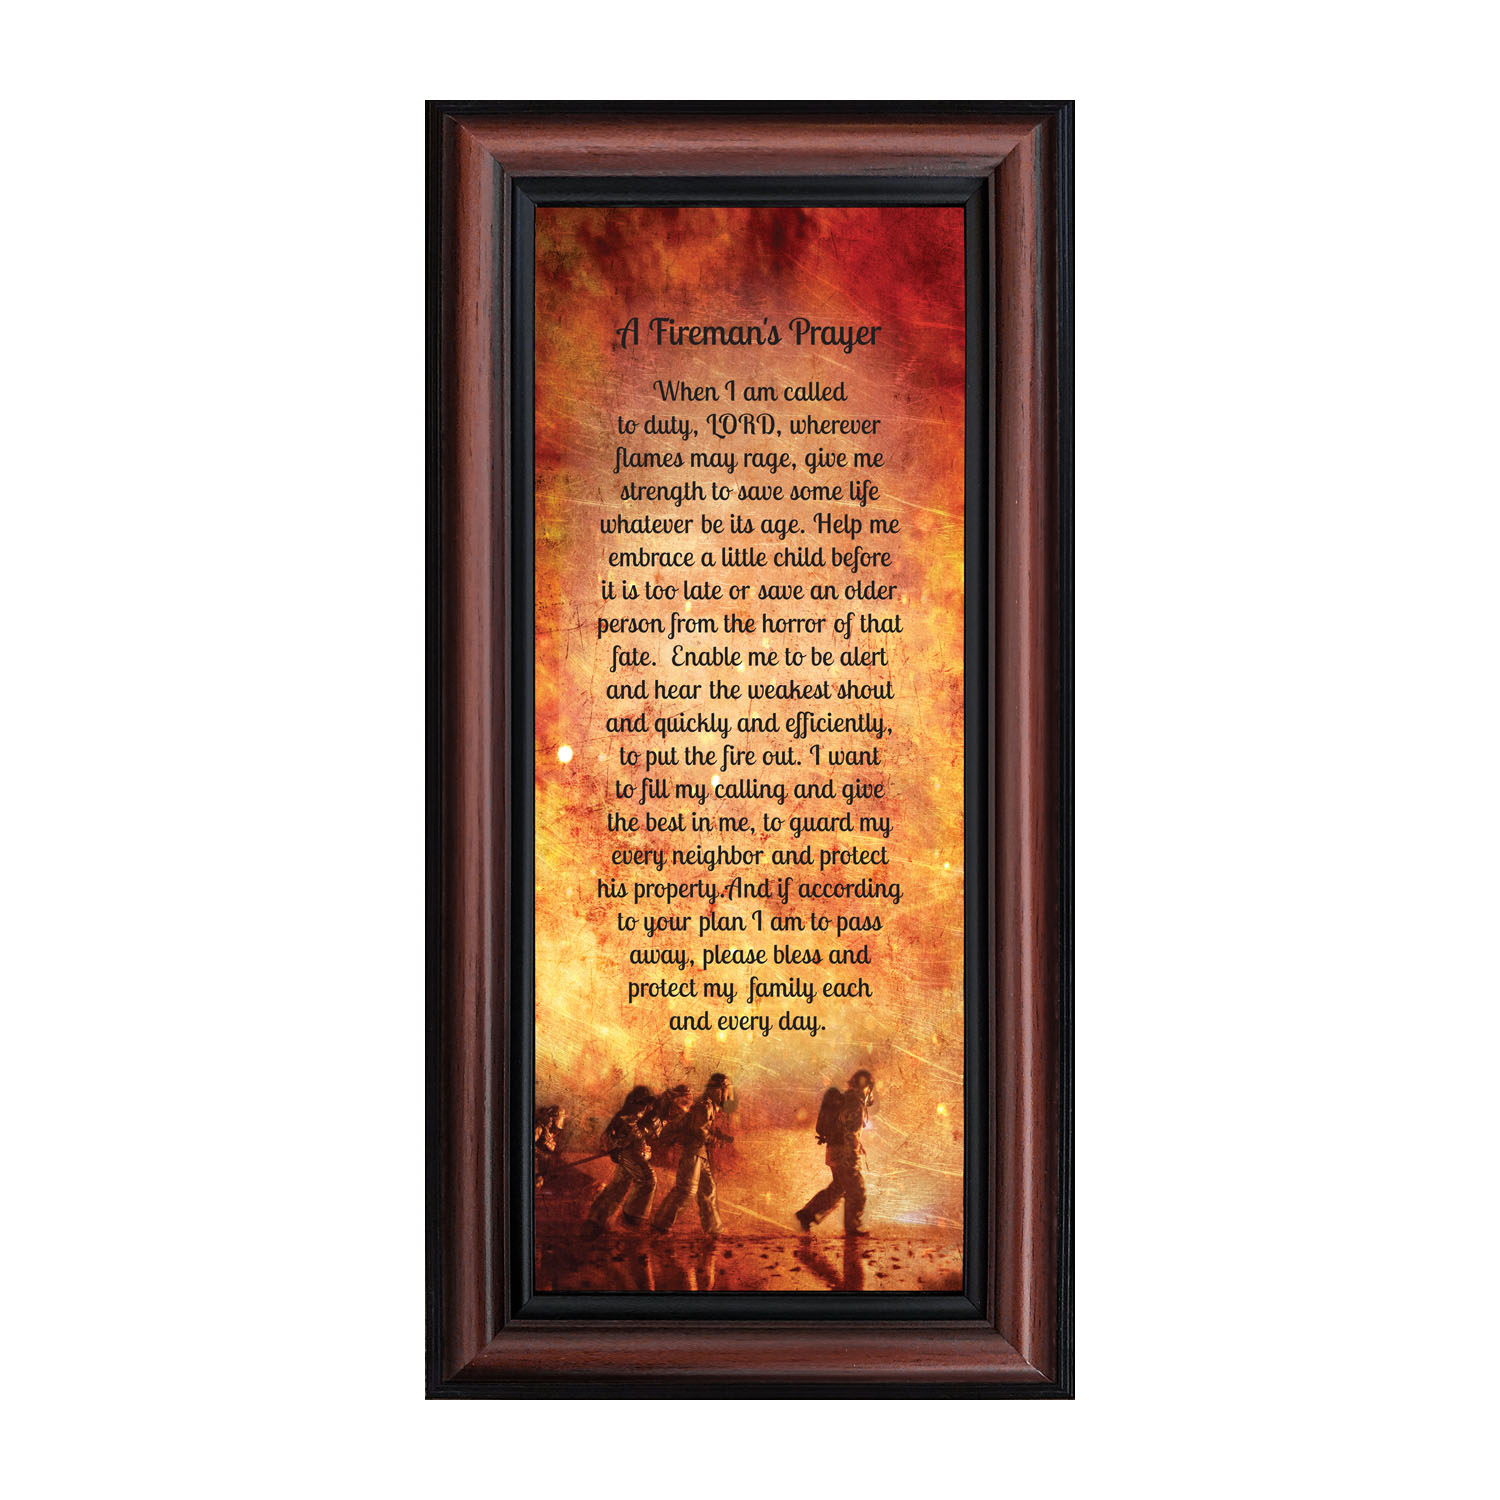 Firefighter Gifts For Men And Women, Fire Academy Graduation Gift, Fire Fighter Gifts Or Firehouse Decor, A Fireman's Prayer Framed Wall Art For Home In Newest A Fireman Prayer Wall Hangings (View 9 of 20)